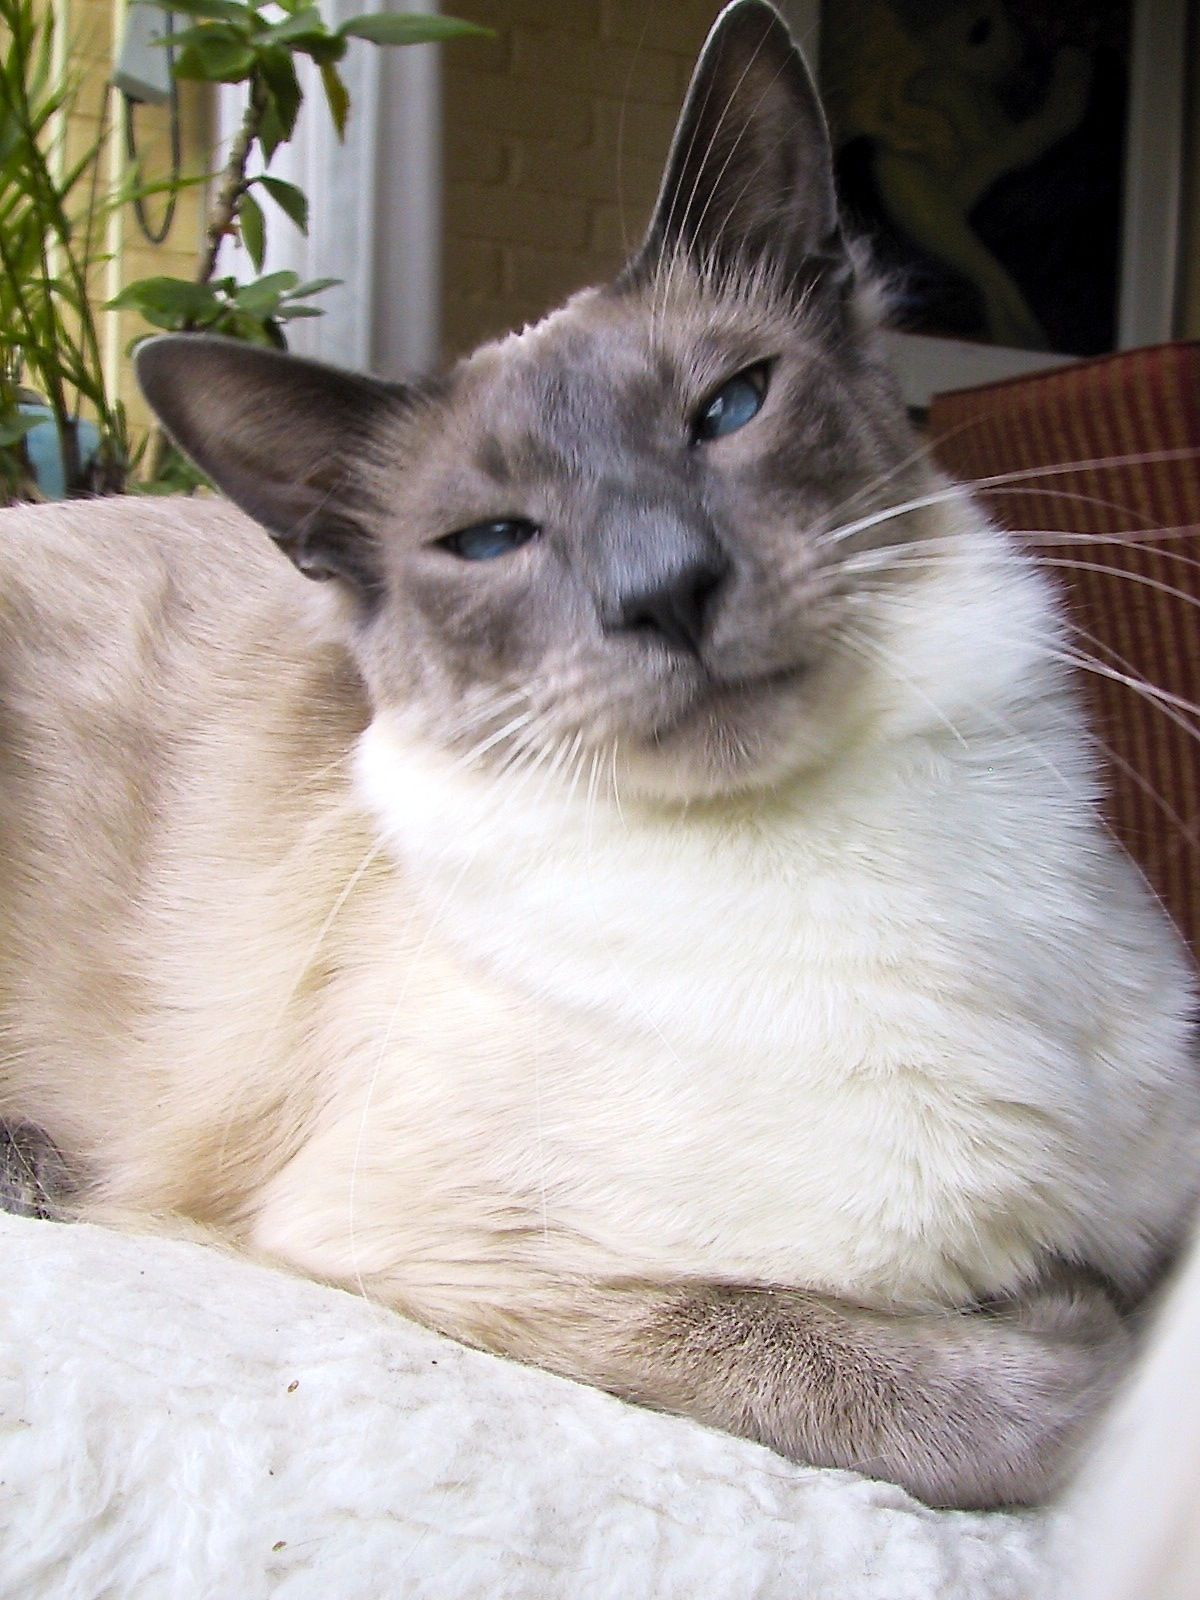 The Balinese Is Breed Of Domestic Cat With Long Hair And